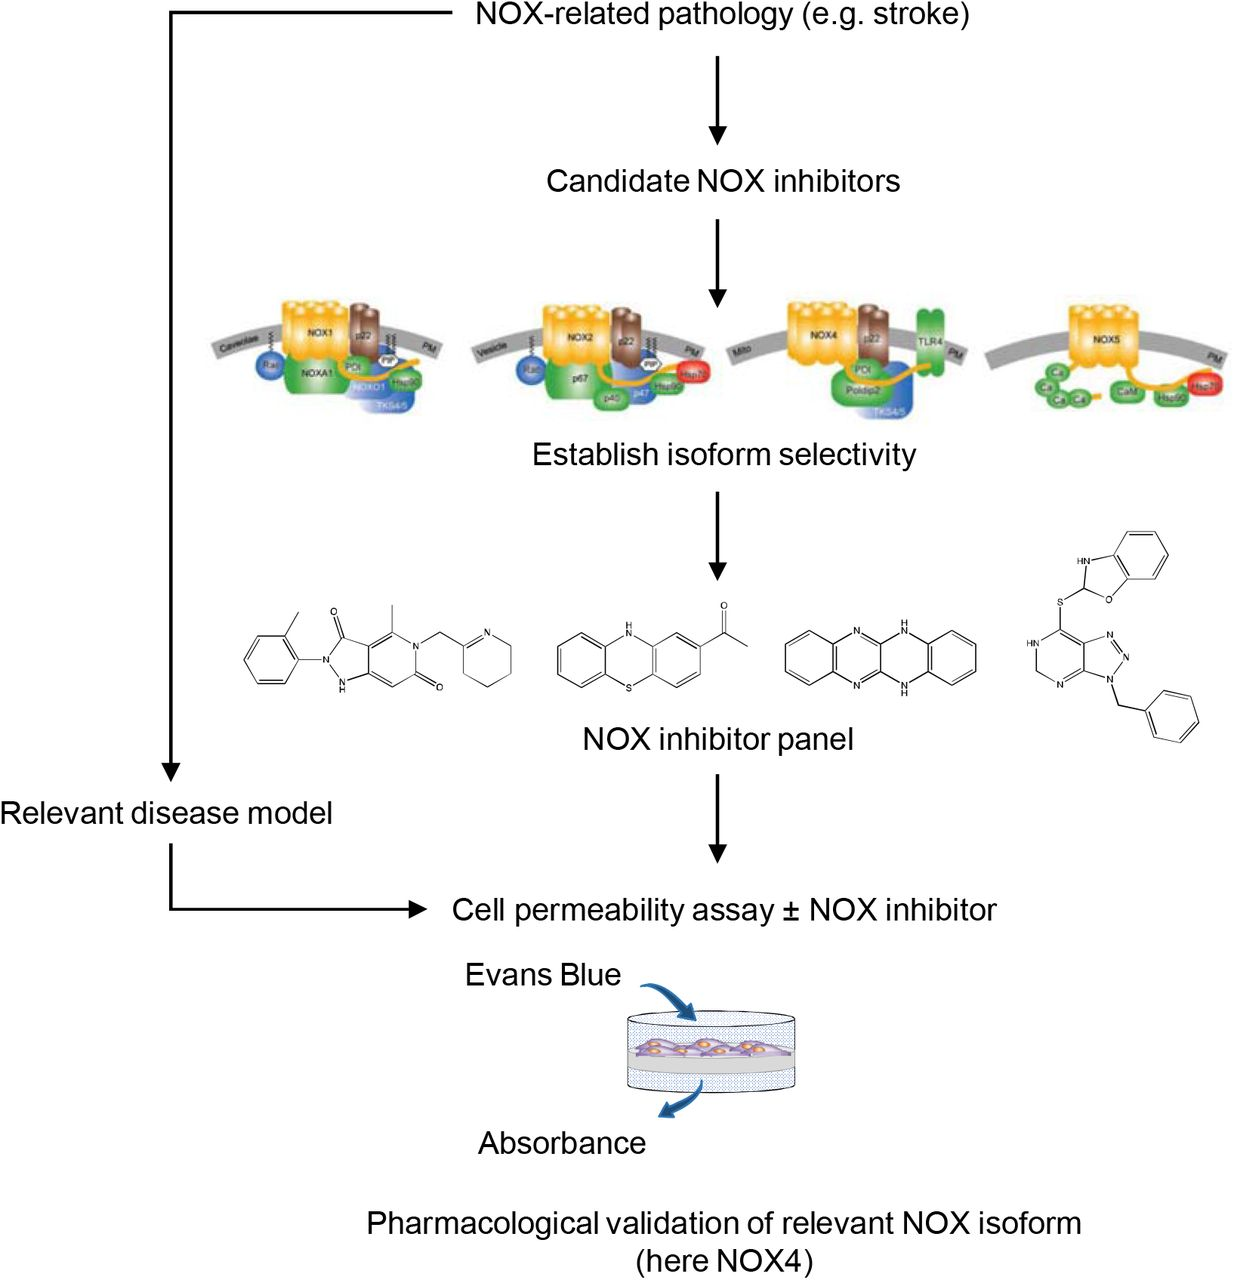 Isoform-selective NADPH oxidase inhibitor panel for